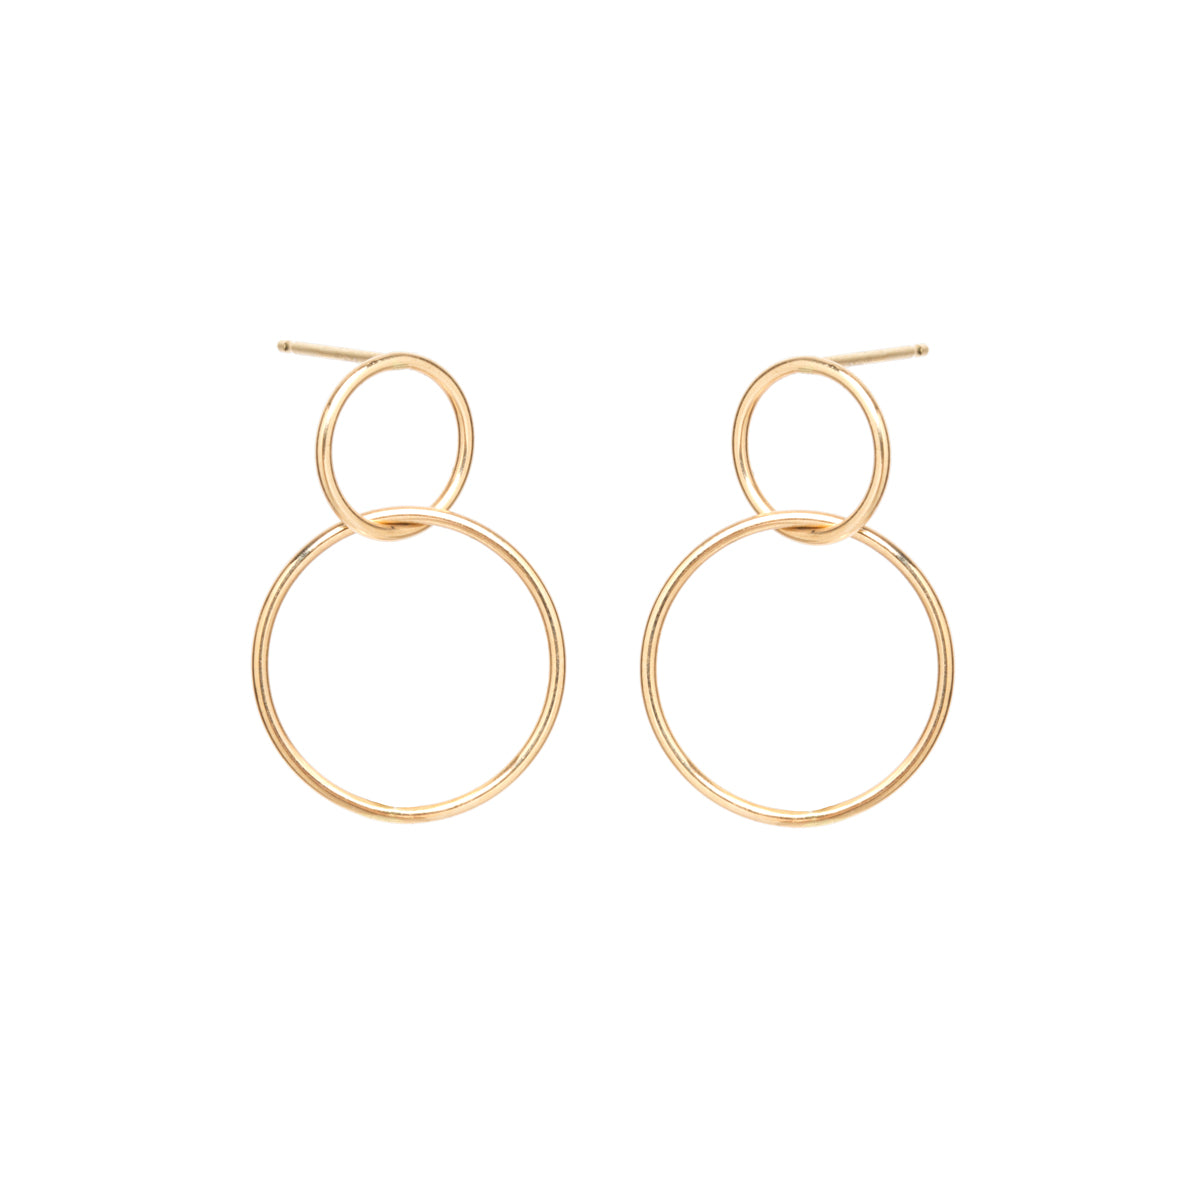 Zoë Chicco 14kt Yellow Gold Double Circle Hoop Earrings